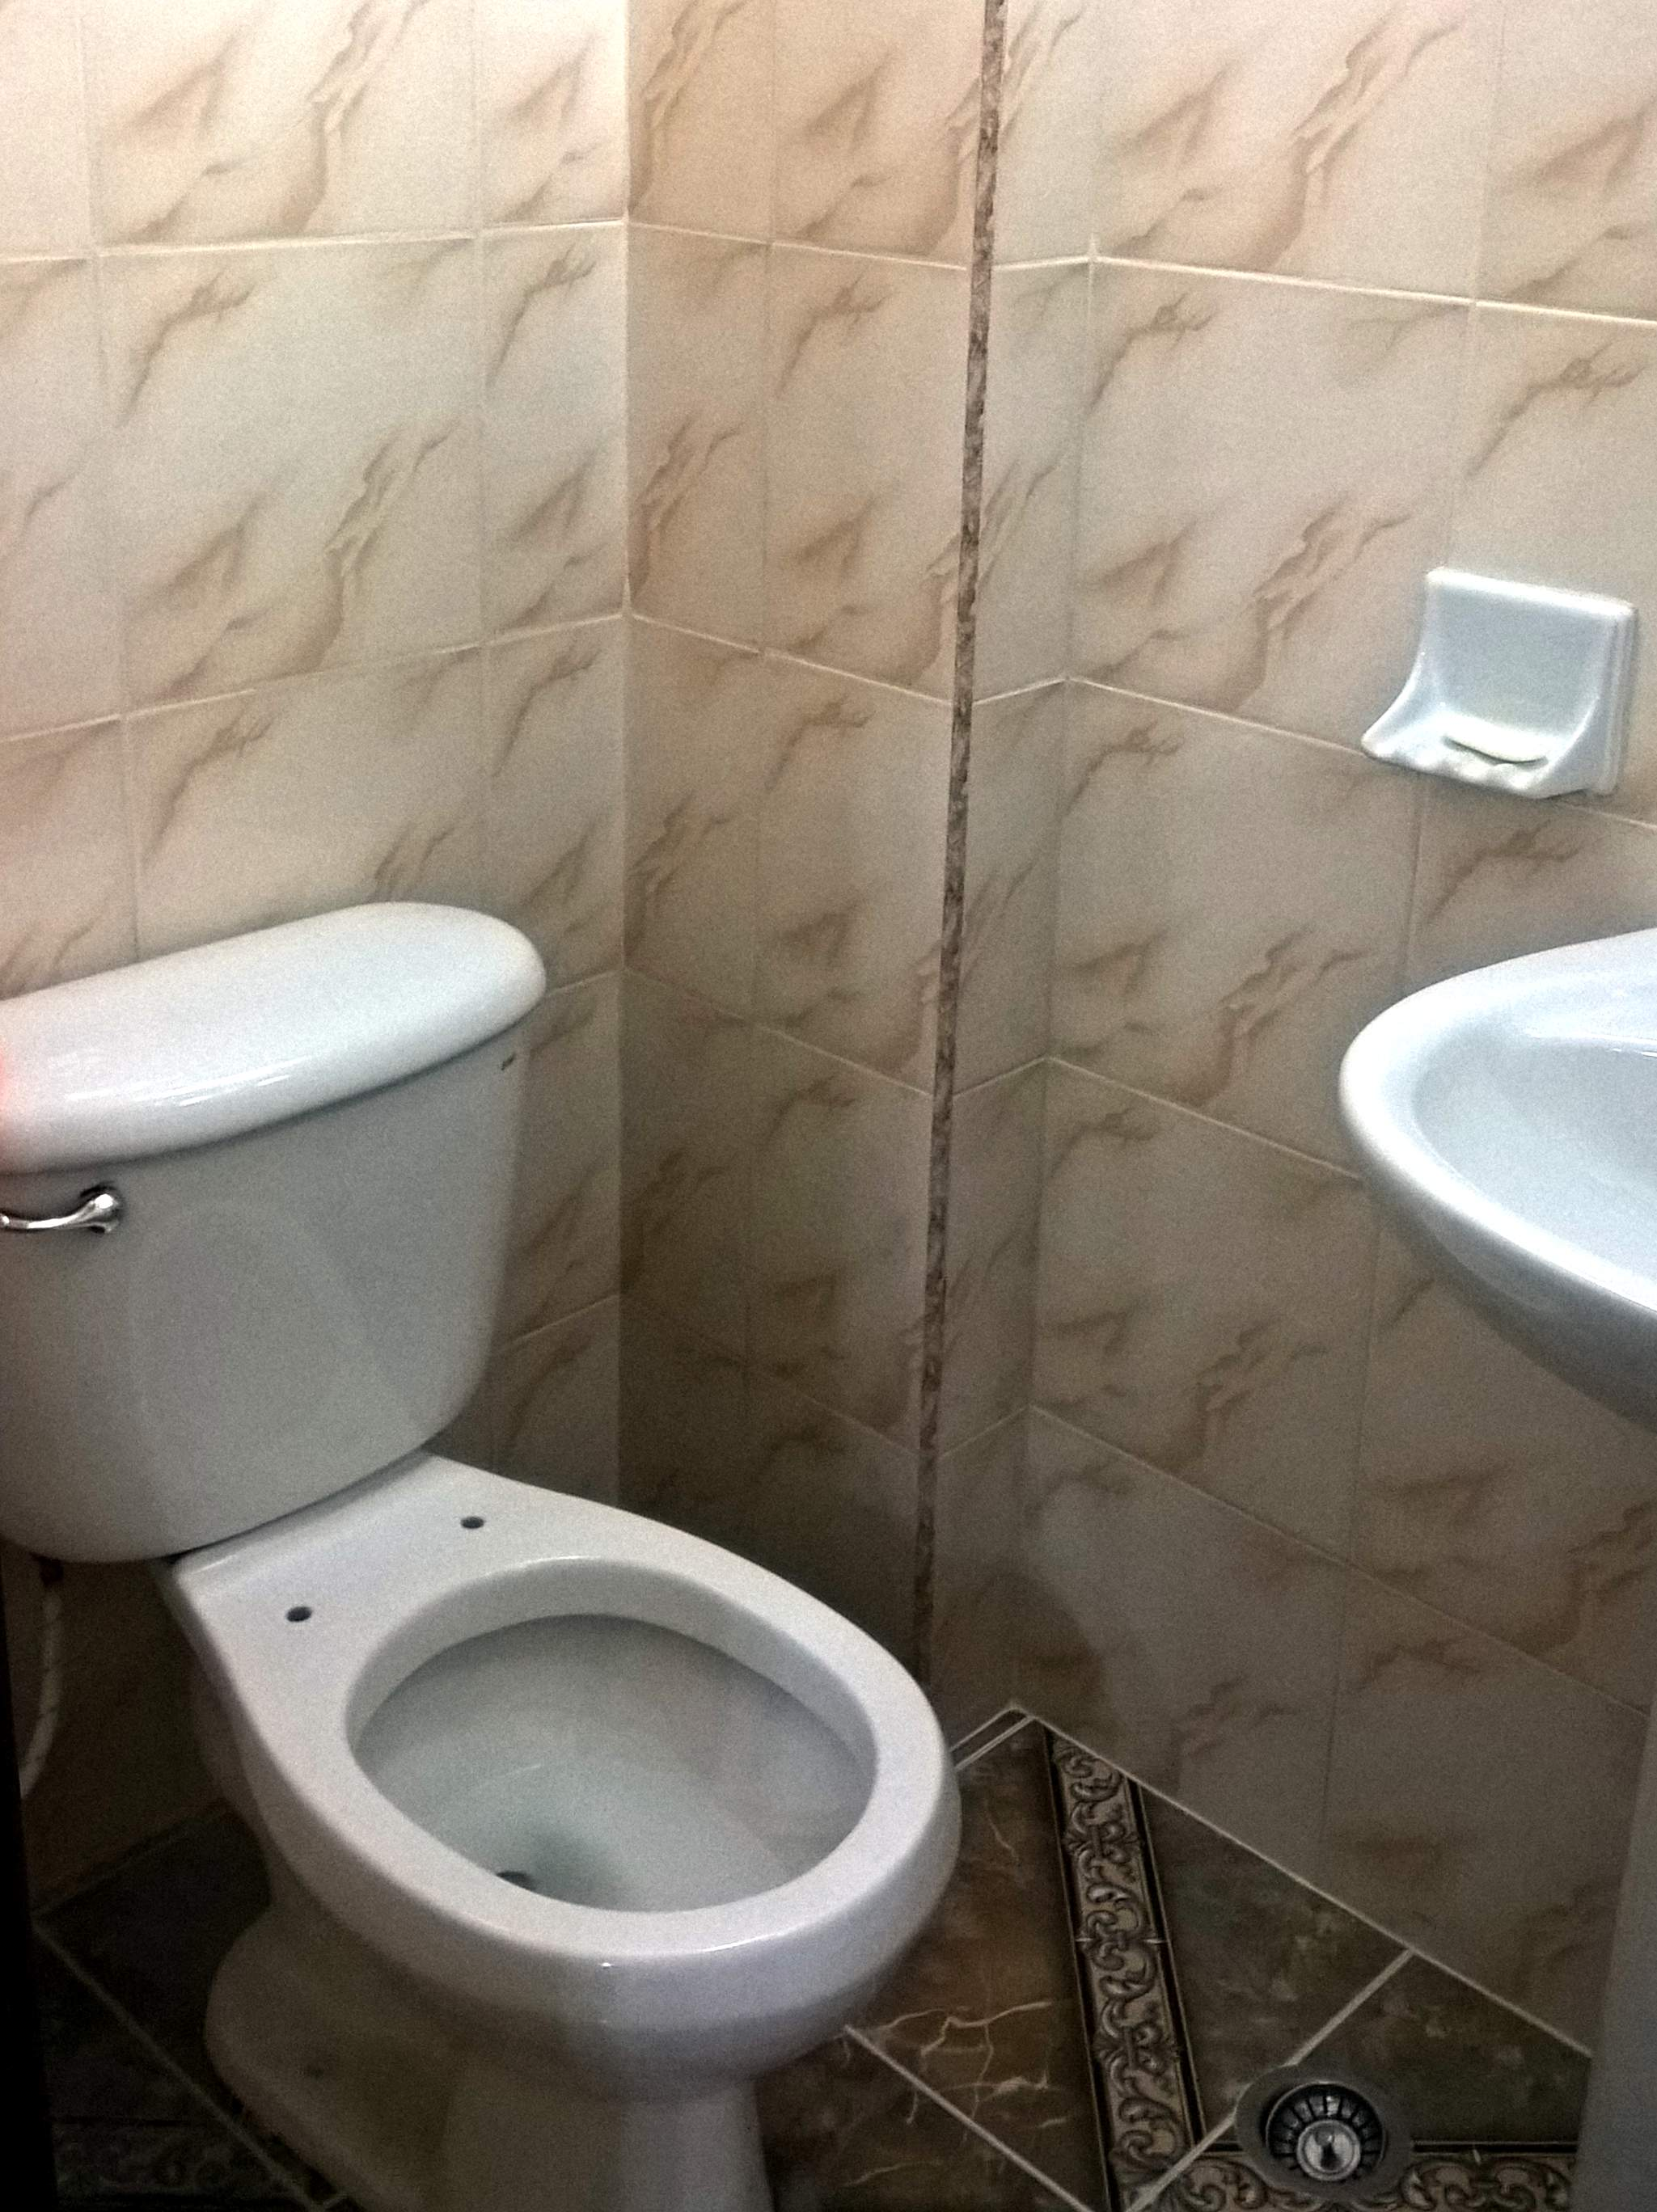 Most toilets on Cuba do not seem to have toilet seats and toilet paper, such as at this AirBnB in Havana.